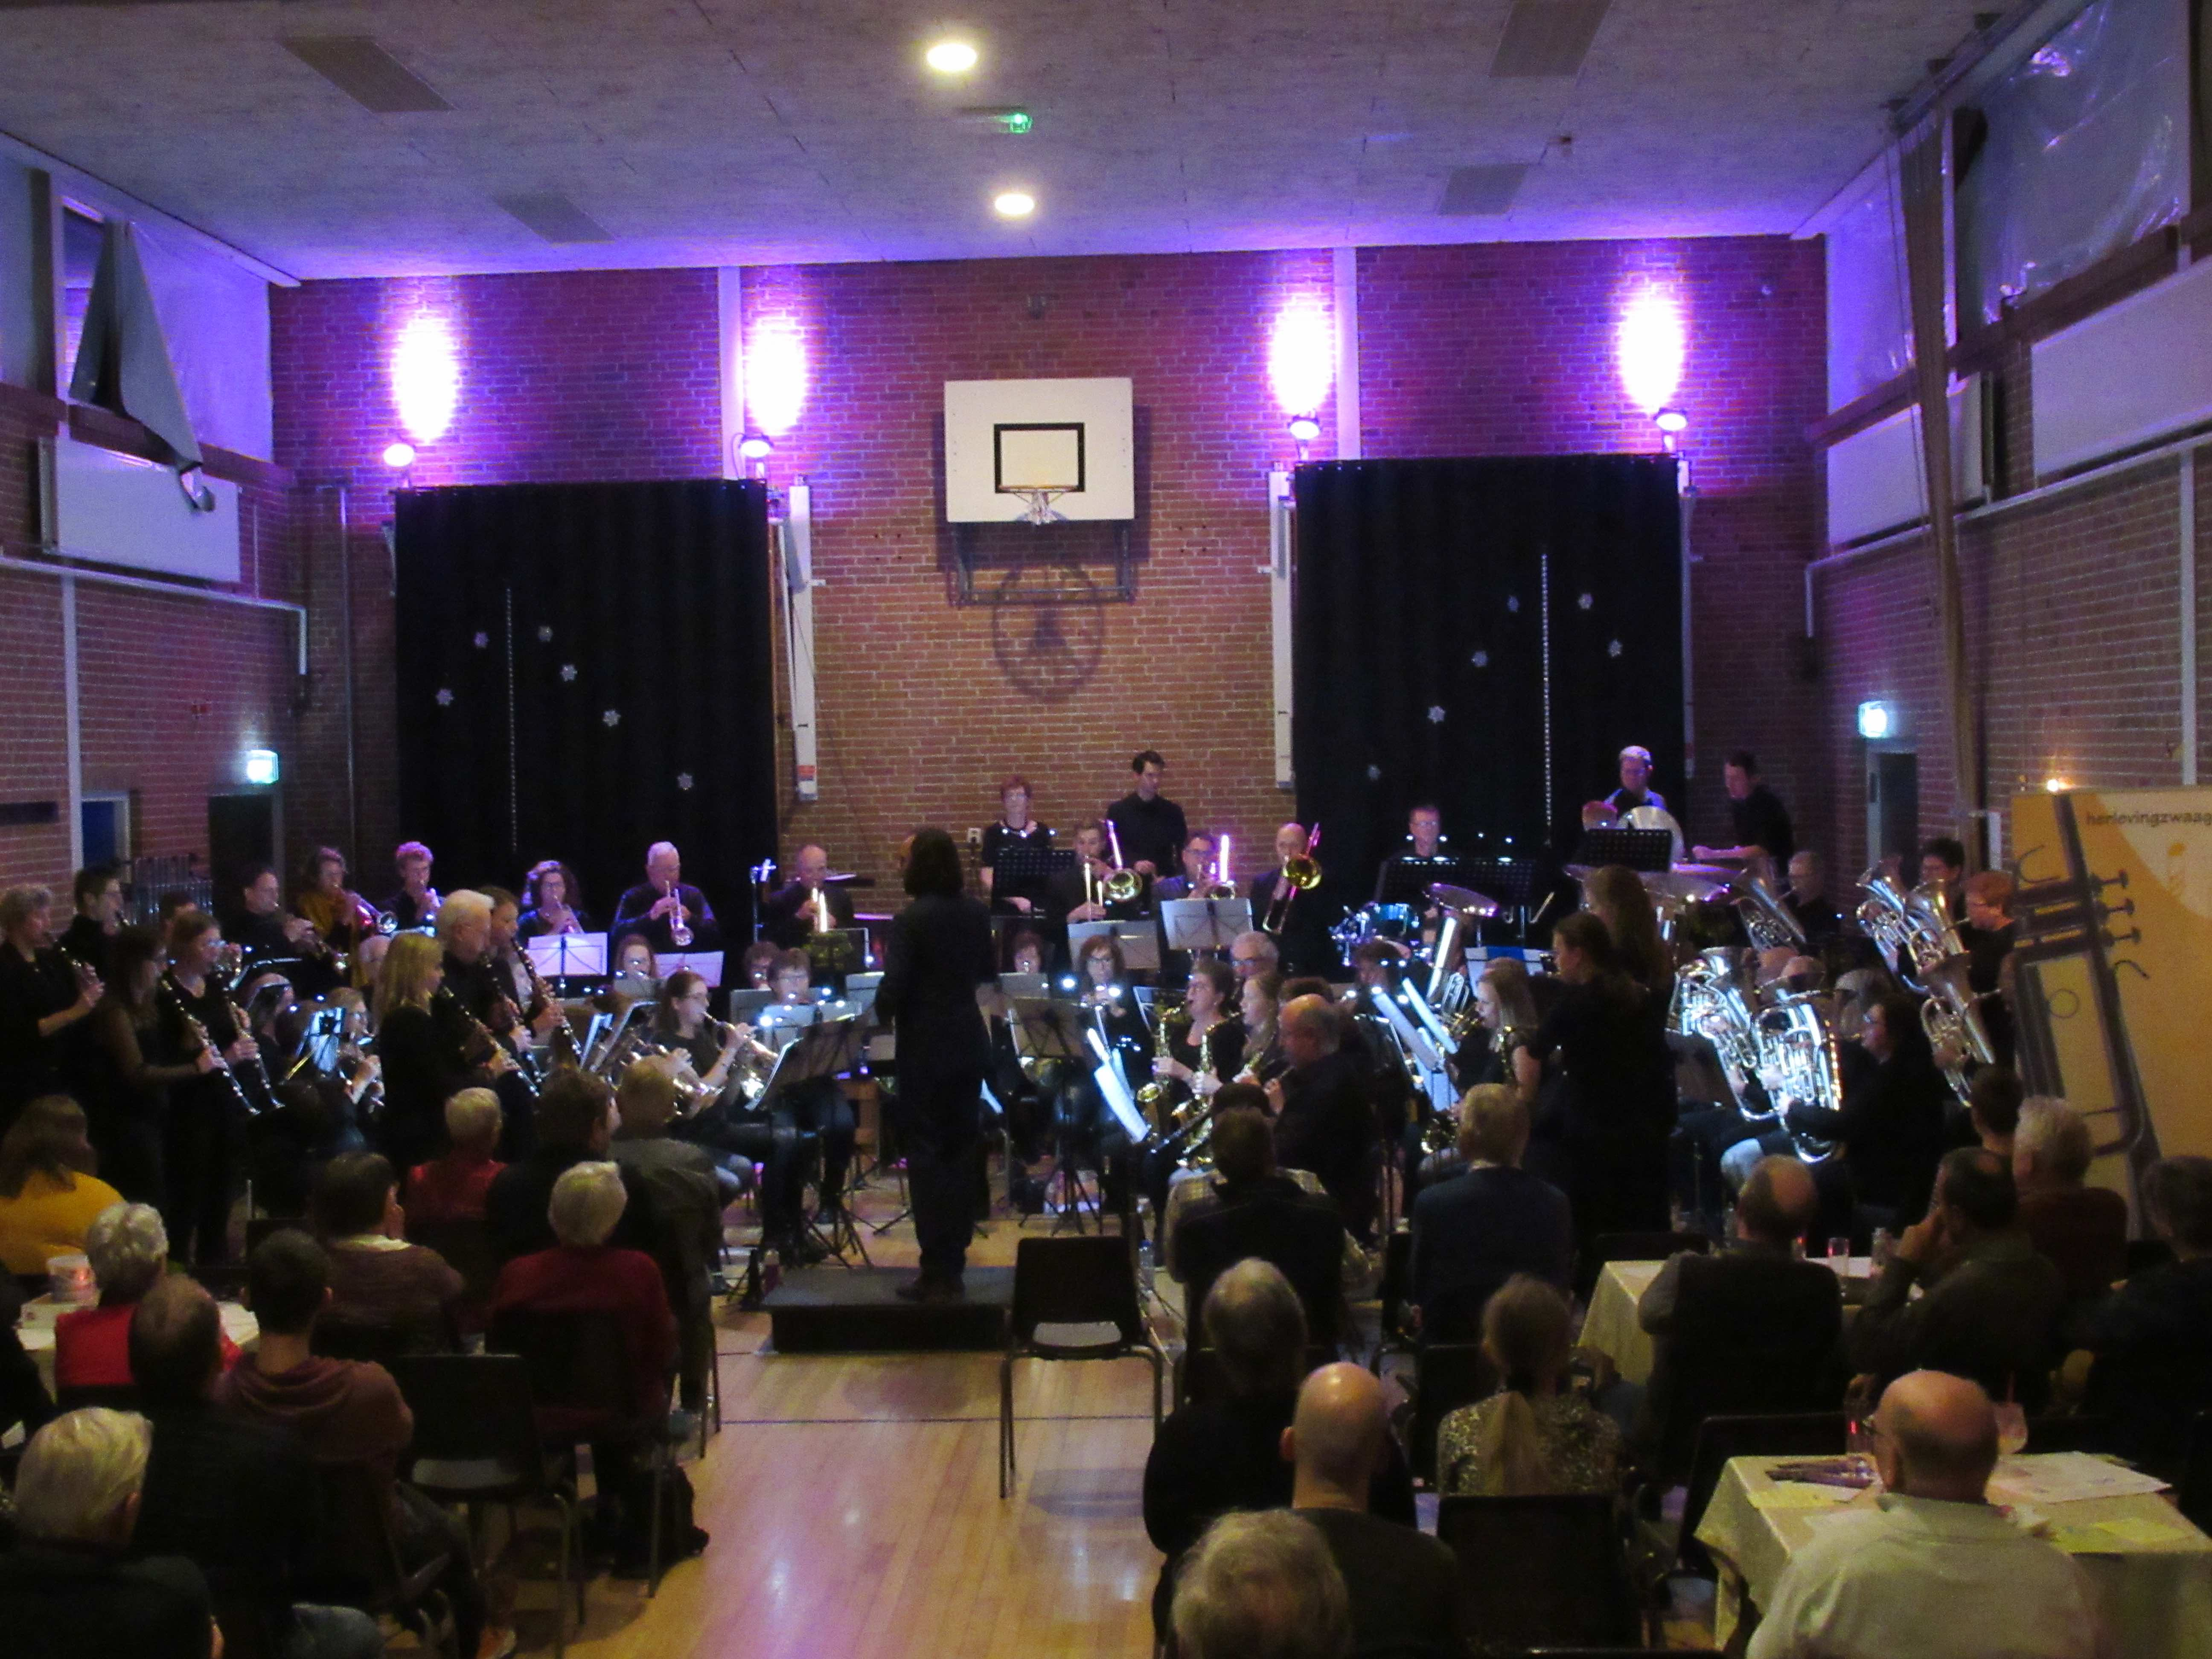 Harmonieorkest De Herleving in Opperdoes